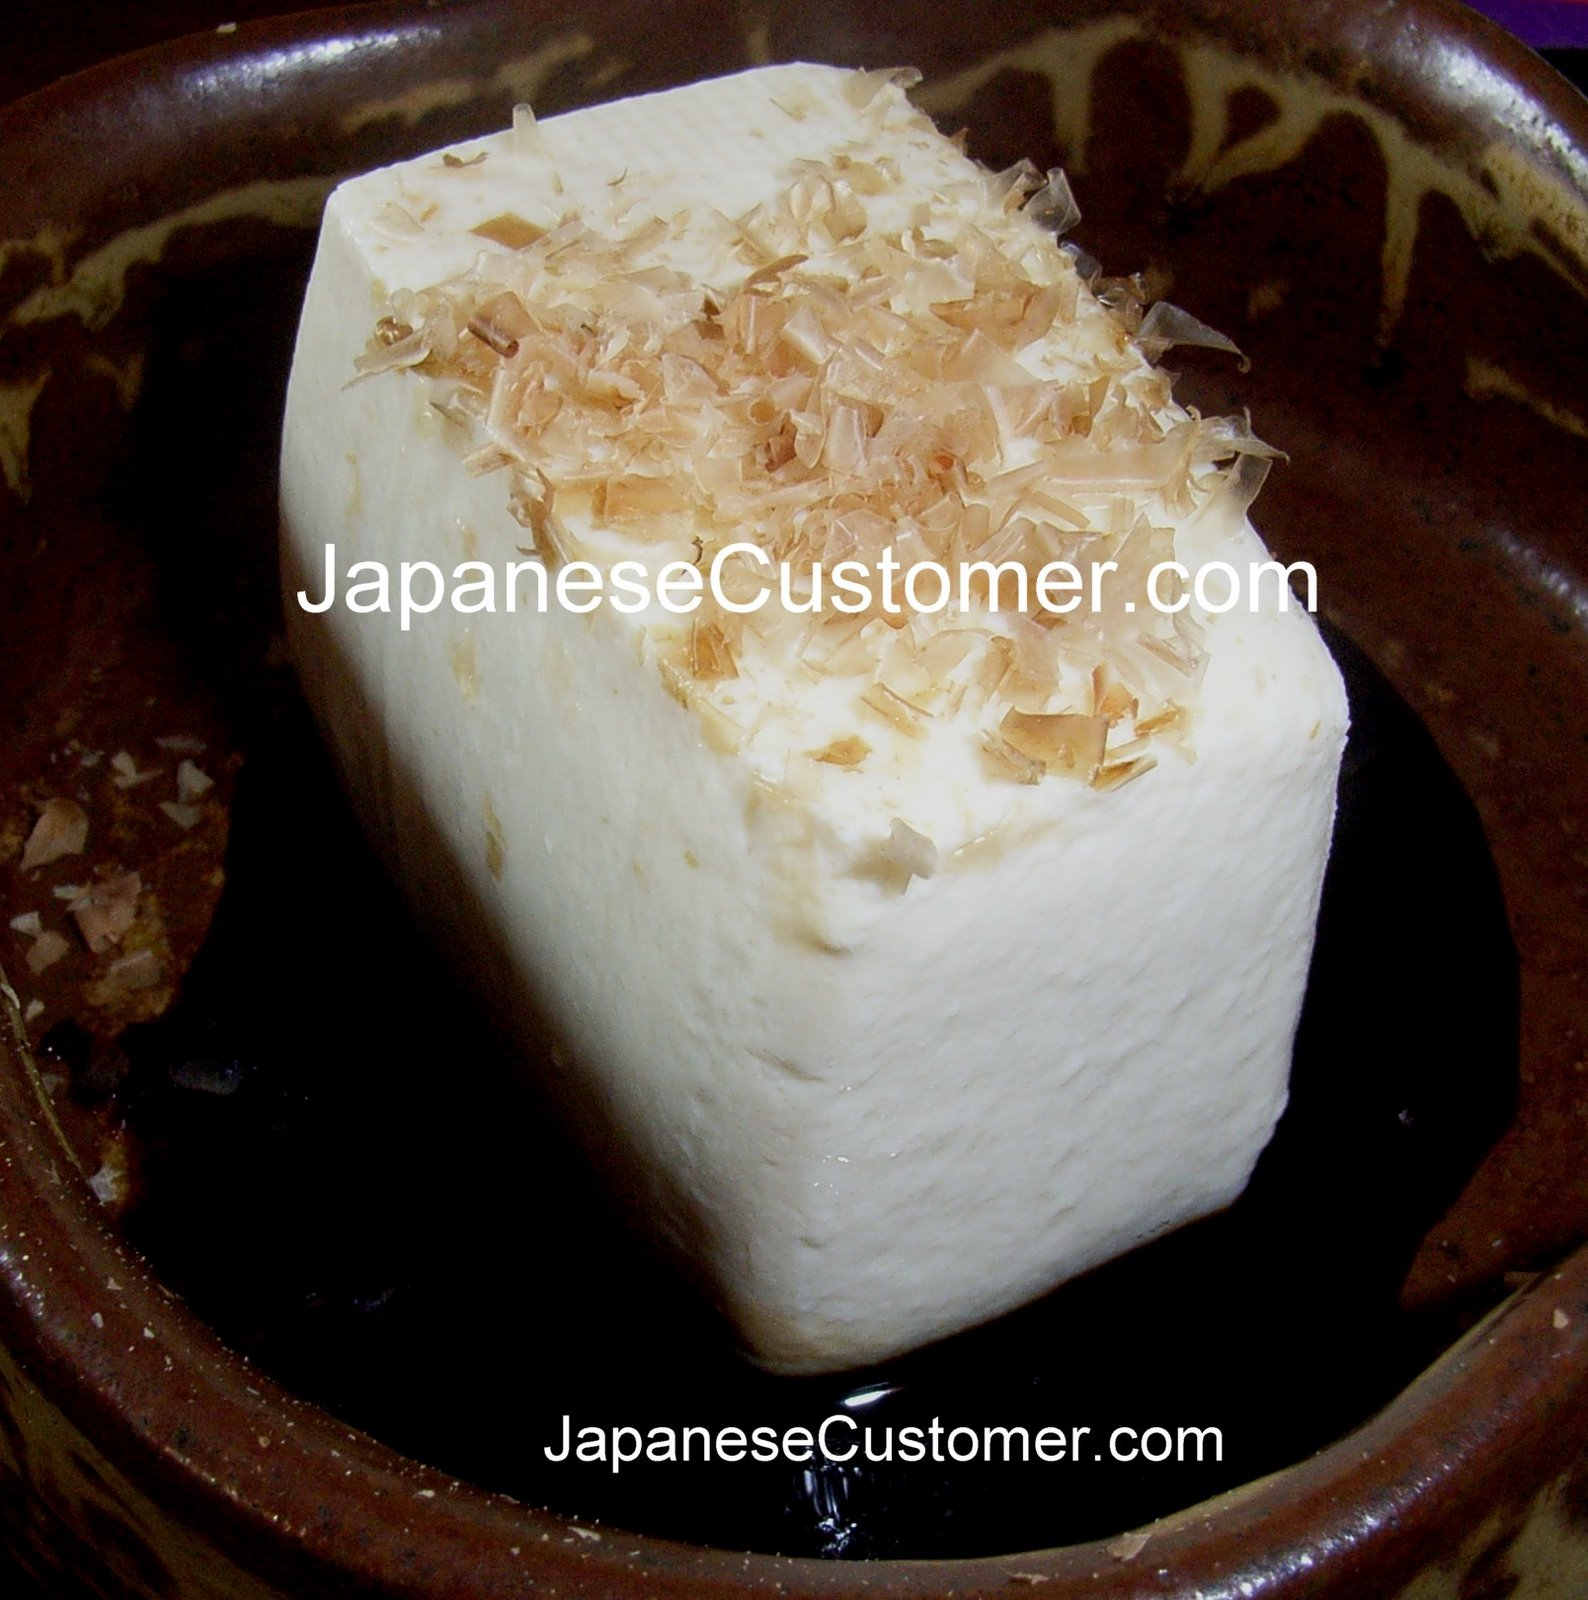 Japanese cuisine, tofu and soy sauce, copyright peter hanami 2005